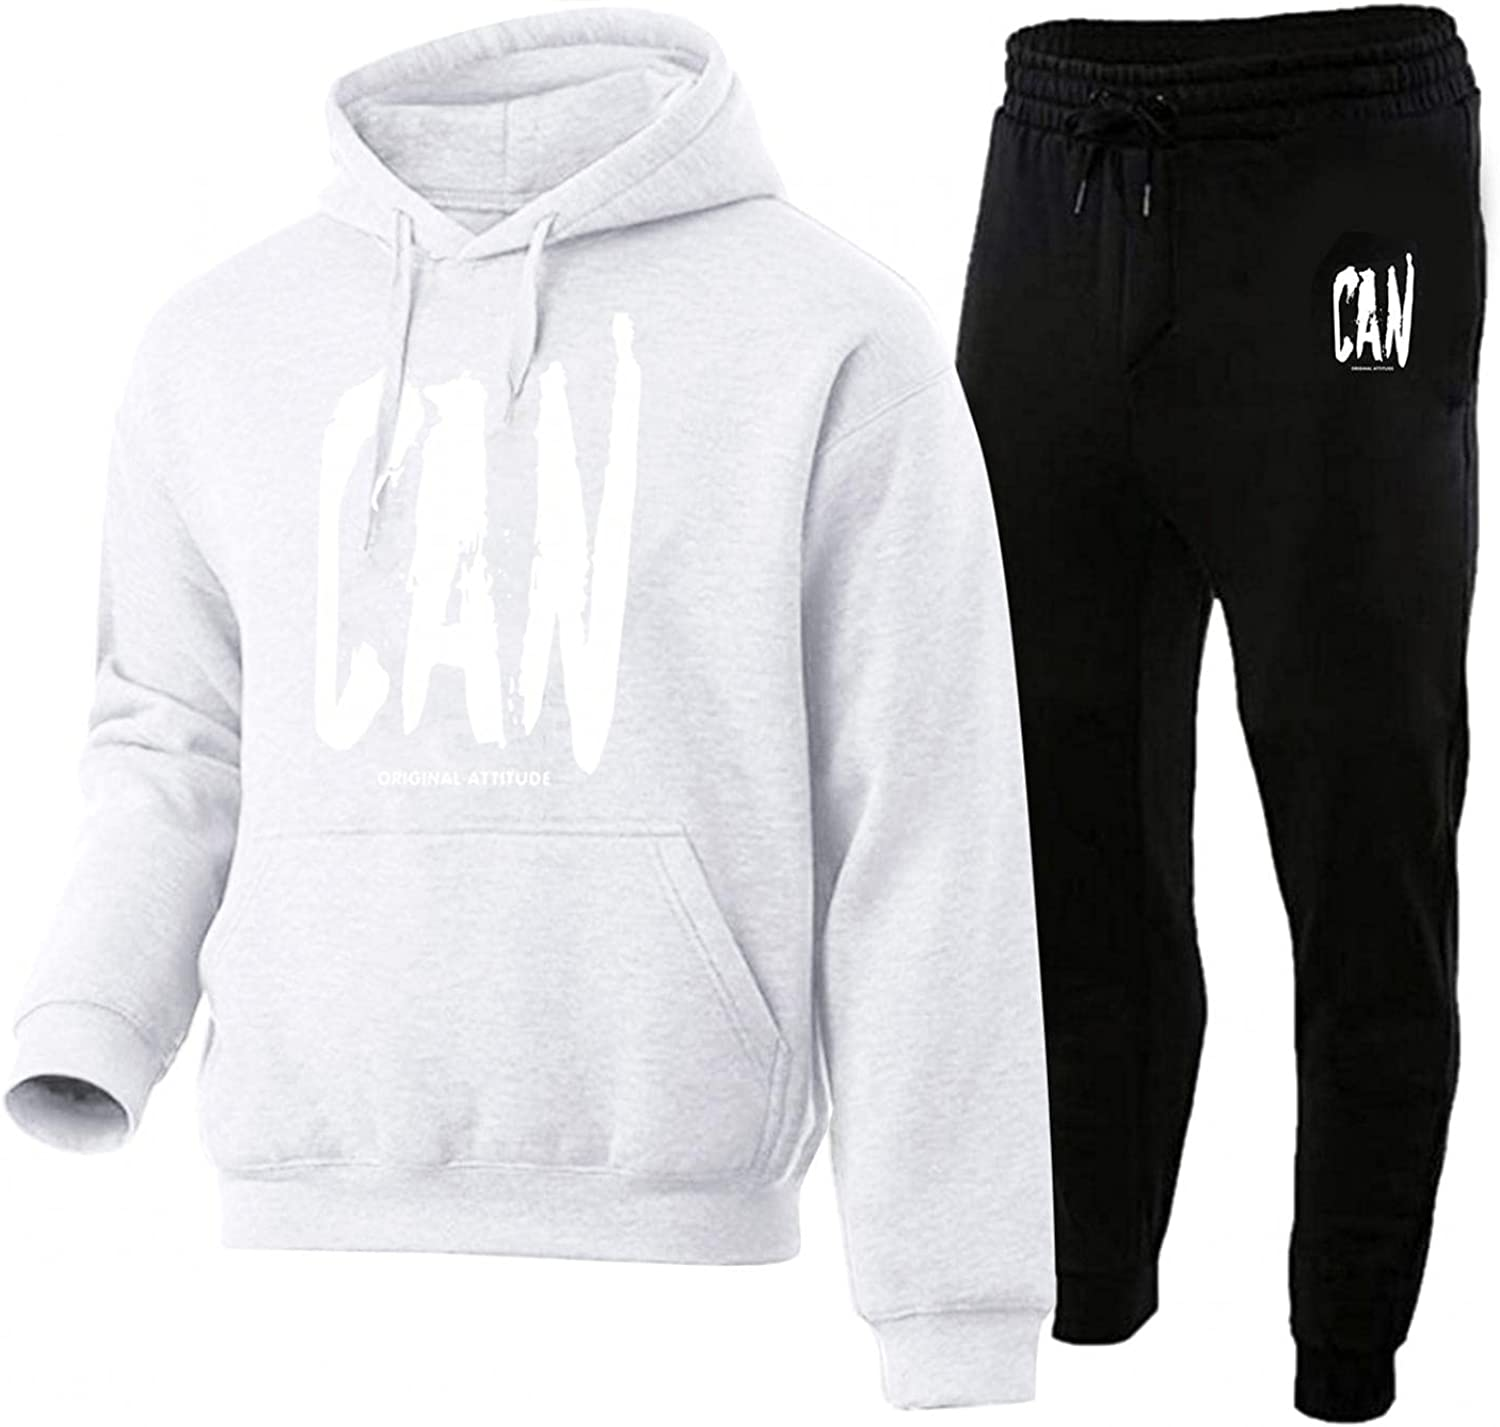 Men Tracksuits 2 Piece Long Sleeve Printed Hoodie Sweatpants Outfits Casual Running Jogging Sweatsuit Pullover Sets